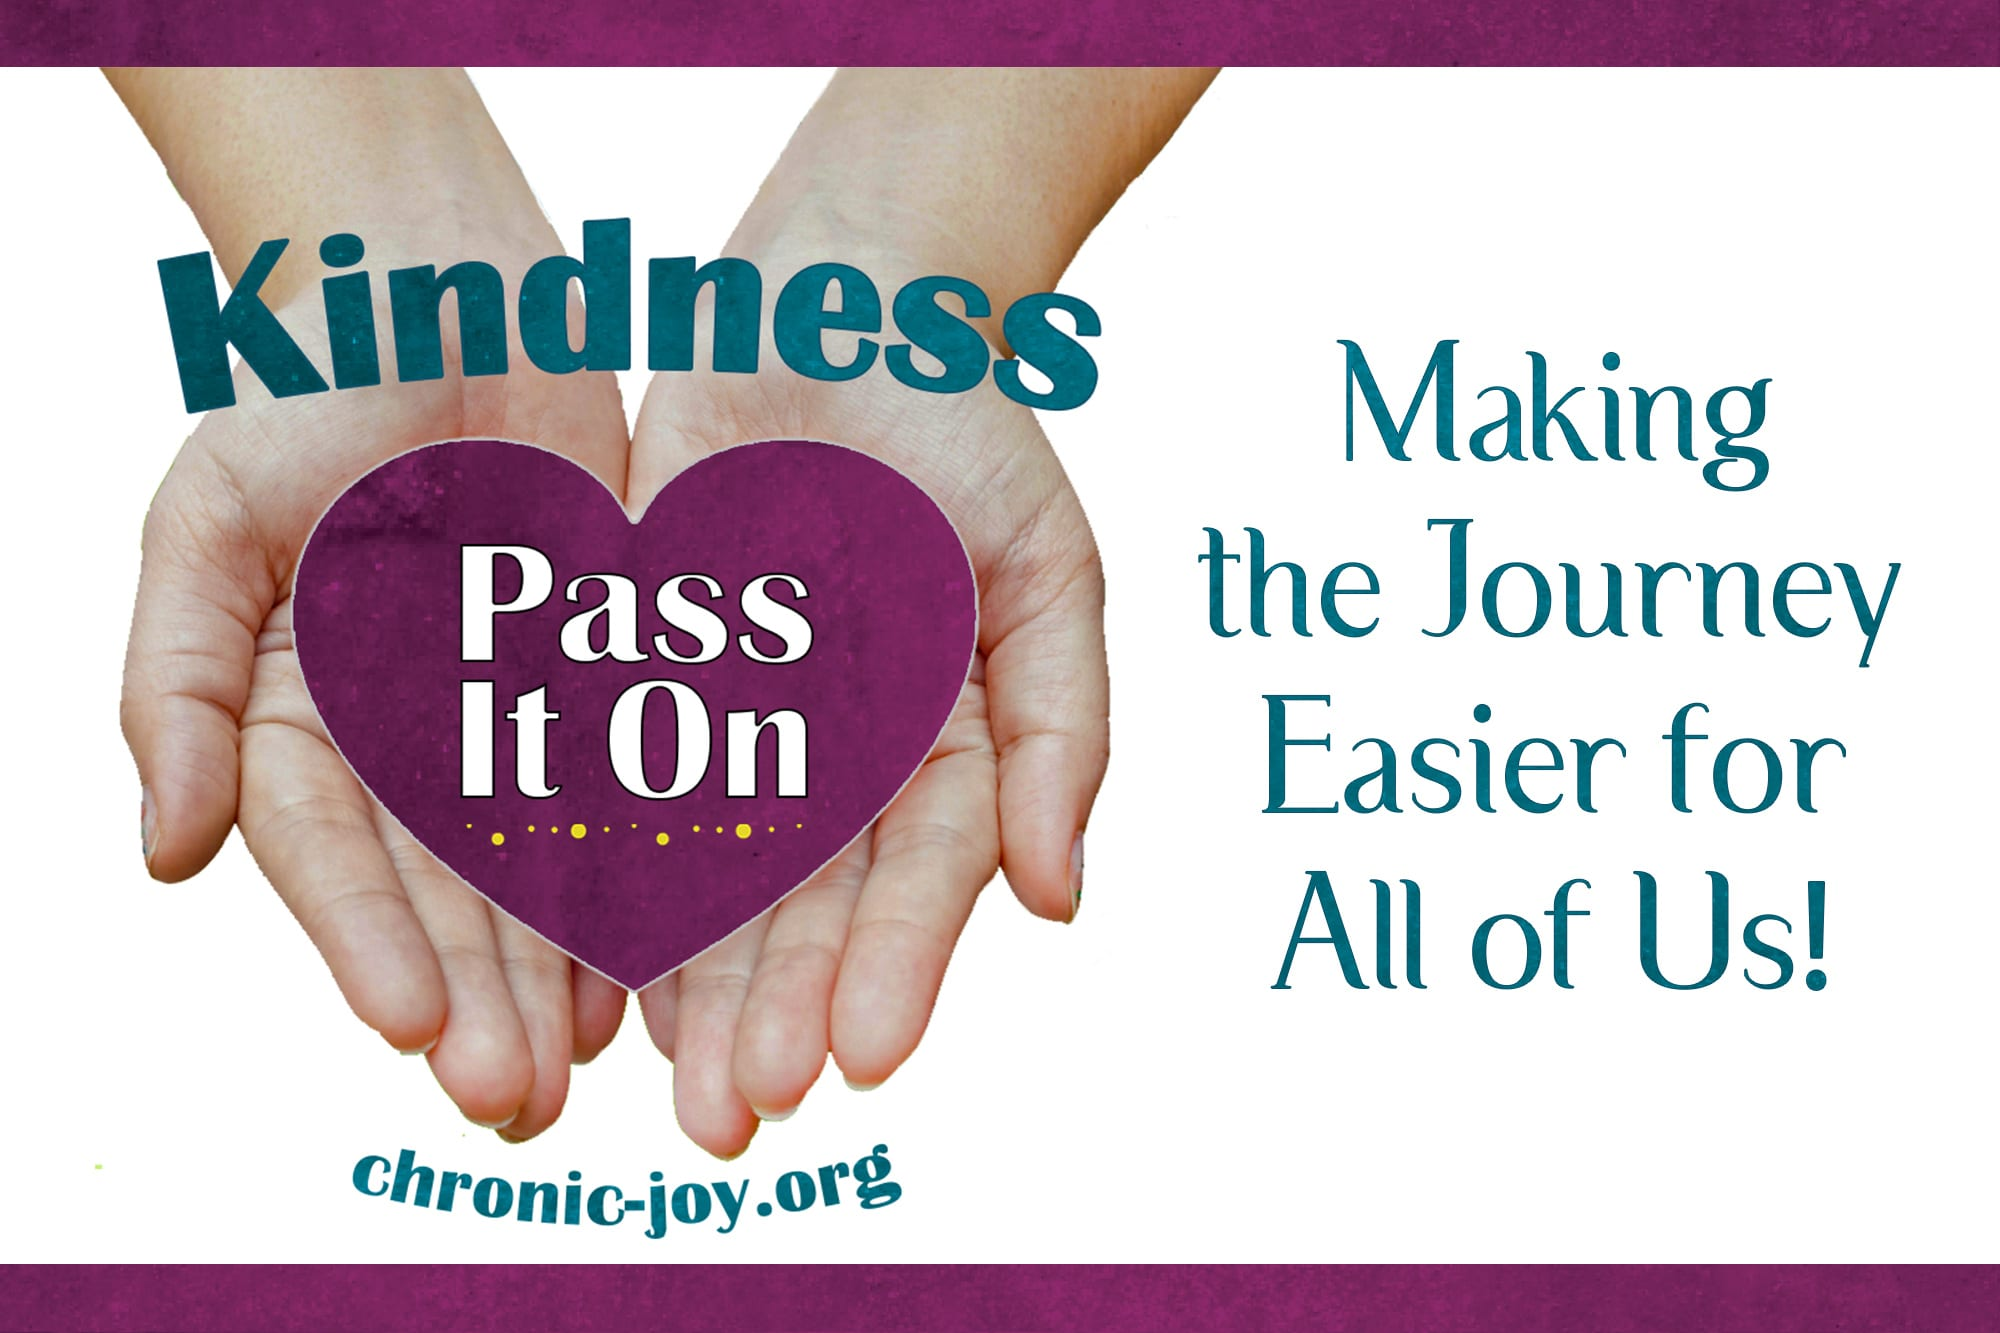 Kindness → Pass It On! Making the Journey Easier for One Another